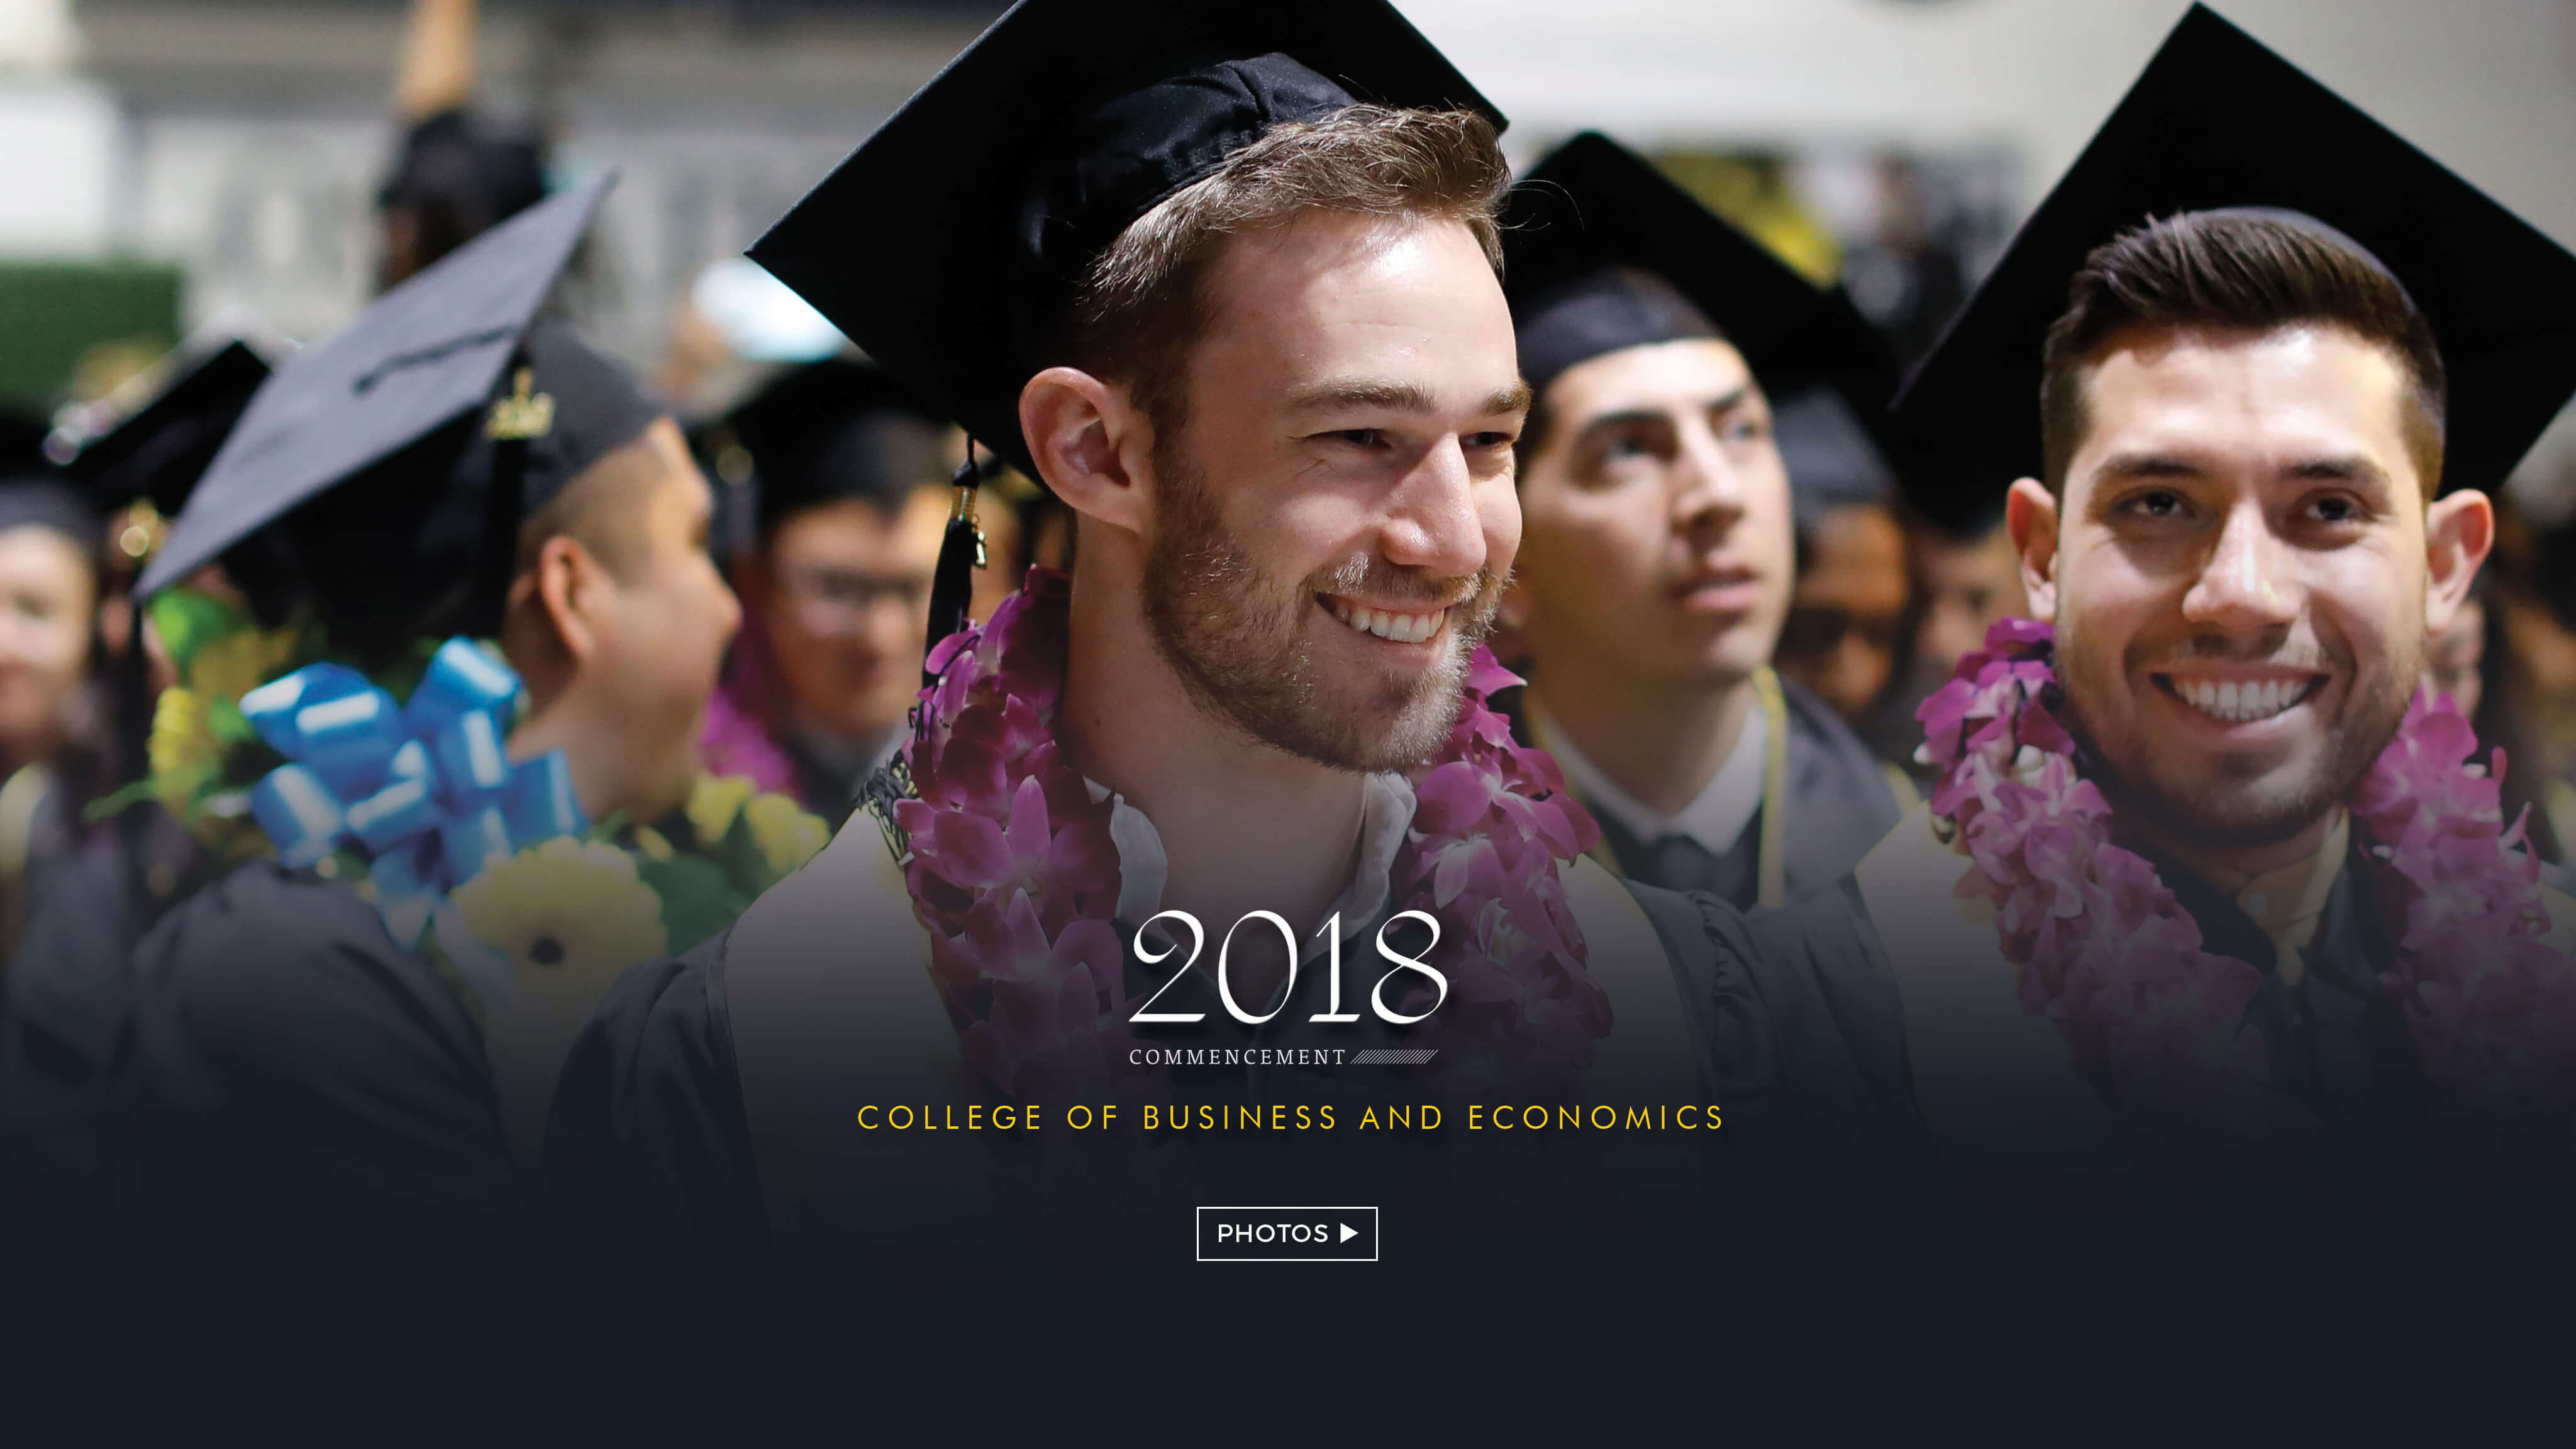 College of Business and Economics photo album